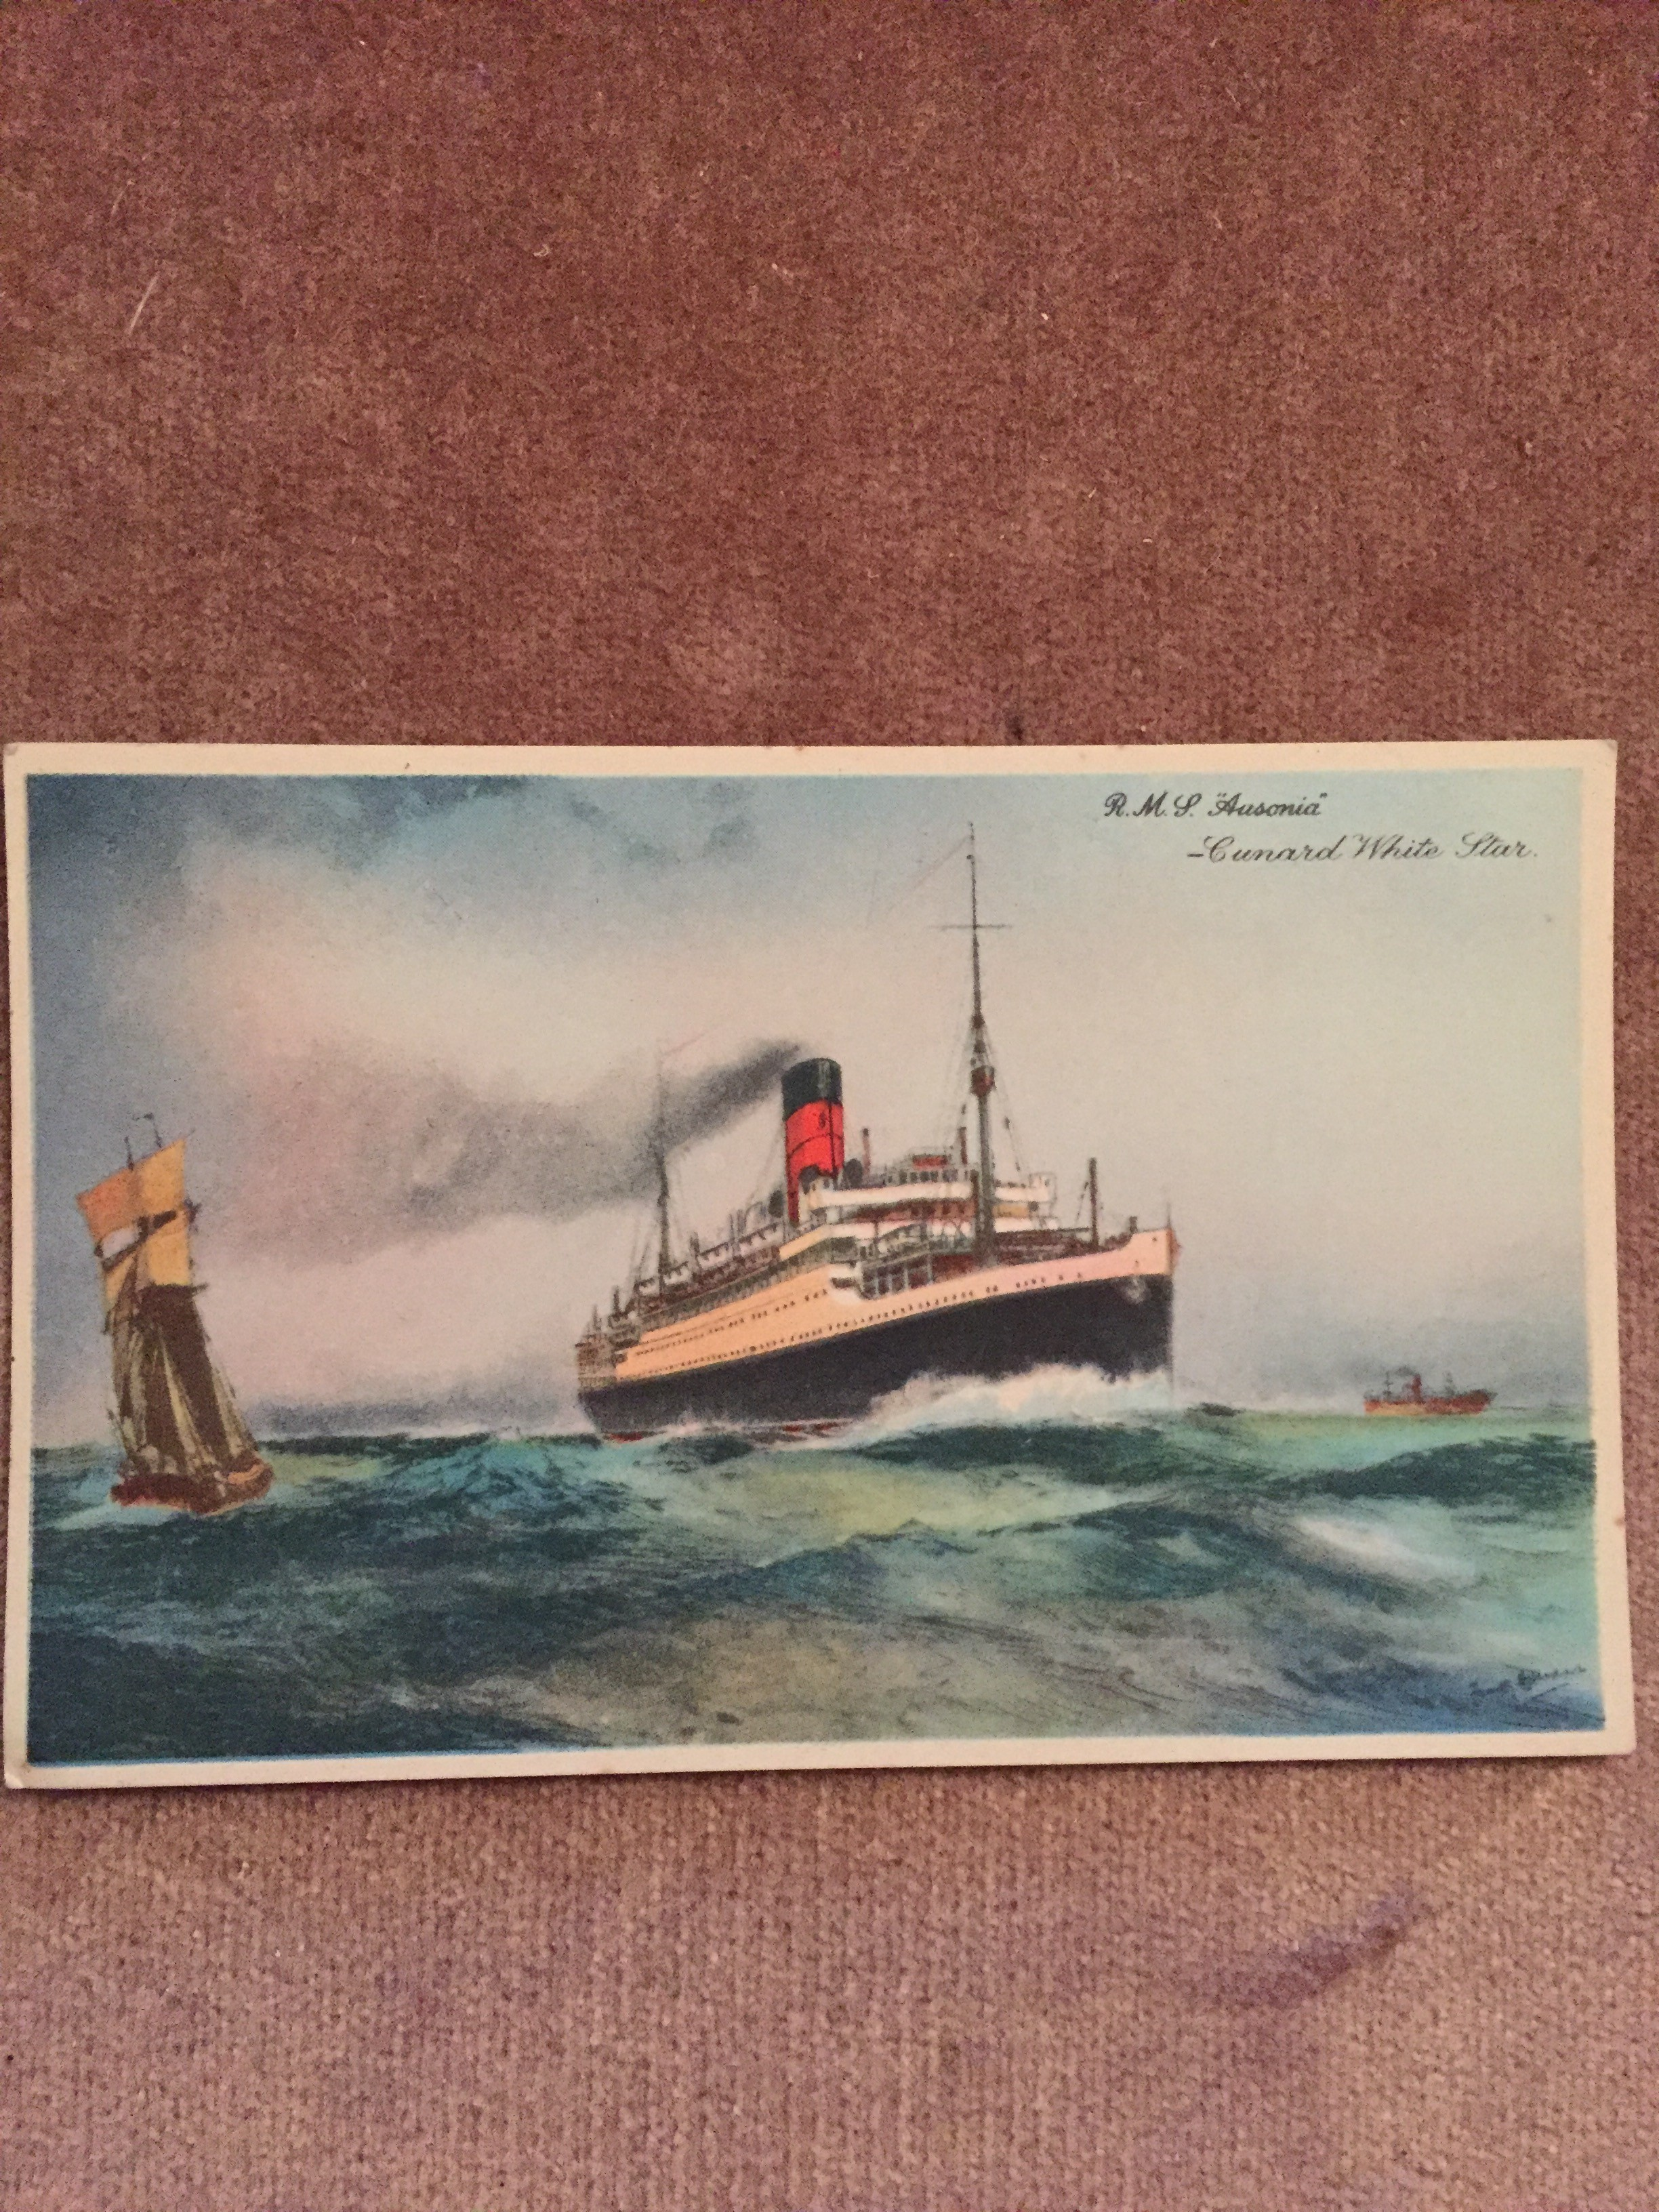 UNUSED COLOUR POSTCARD FROM THE OLD CUNARD WHITE STAR LINE VESSEL THE RMS AUSONIA